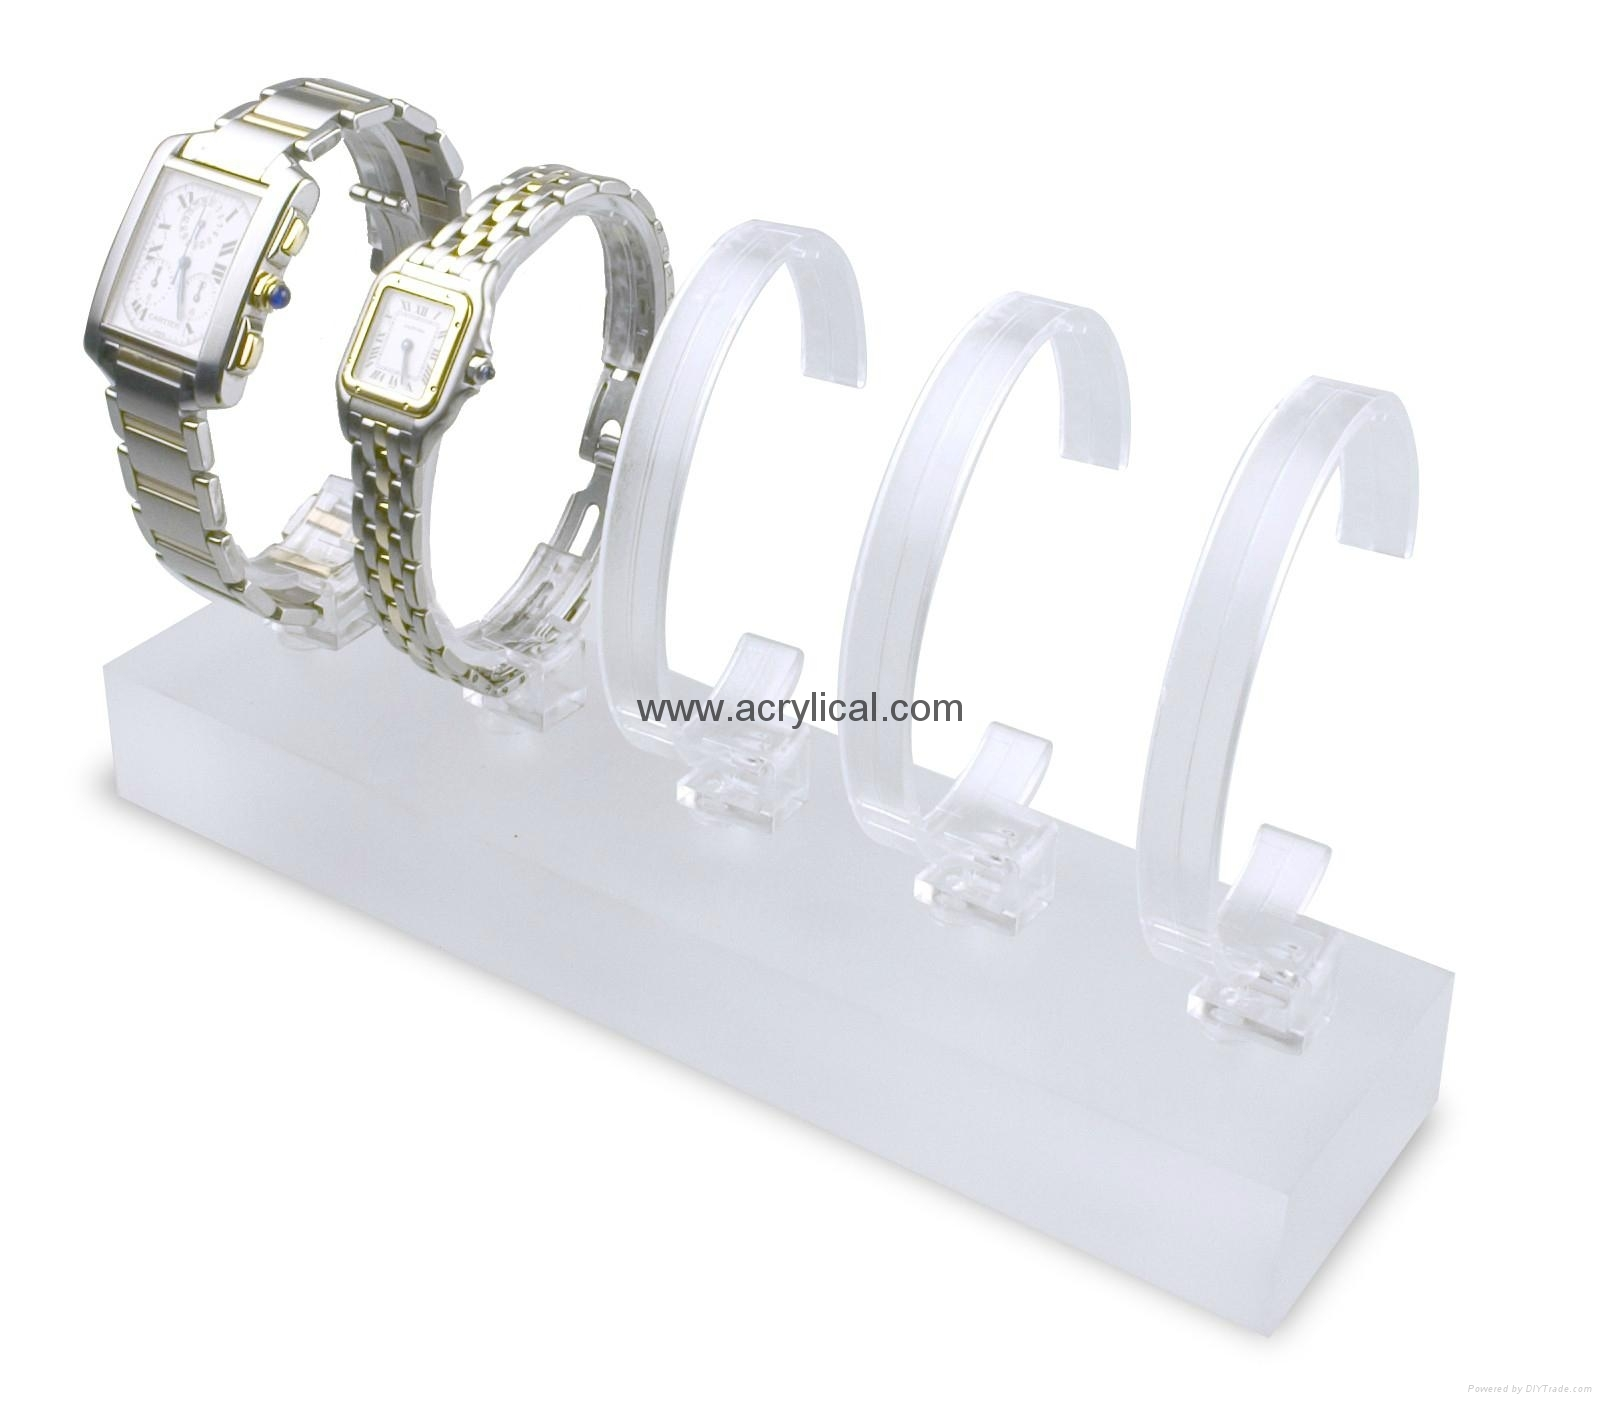 watch display,watch display holder,wrist watch display stand,Acrylic display stands, Acrylic sign letter ,Acrylic photo Frame,Literature displays, Brochure holders, Acrylic sign holder,Menu stand,Promotion gifts,Cell phone display stands, Acrylic Easel Book Holder Rack,Acrylic display case/Box ,Diecast car display case ,Trophies, Artistic ,POP display stands,Acrylic coaster,Jewelry display stand,dome display, eyewear display stands,LED lighting  Box,Poster display,LED display stands,Watch display stand,Counter top display stand,POP stand,POP display,Floor Standing Unit ,PETG,PVC,Vacuum forming,Window display stand,Acrylic Award,Cosmetic display,metal display rack, acrylic display rack.wooden display rack,retail shop display stand.